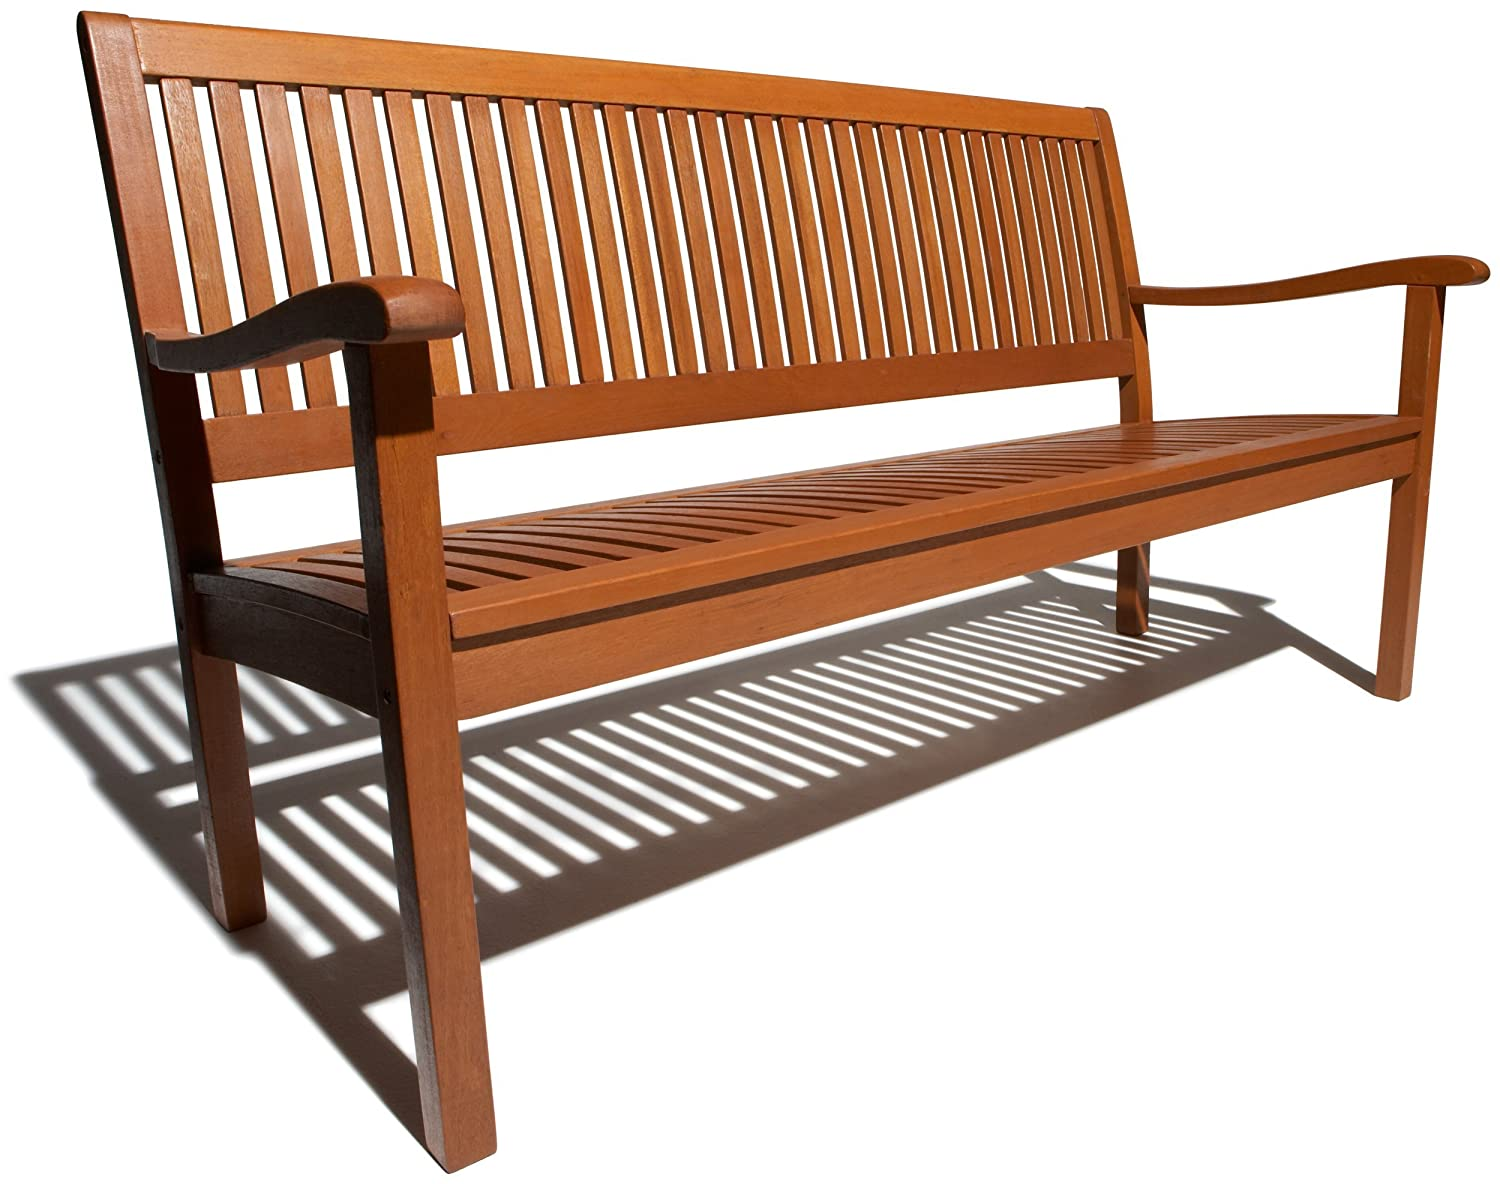 Wood Patio Bench Home Decor And Furniture Deals